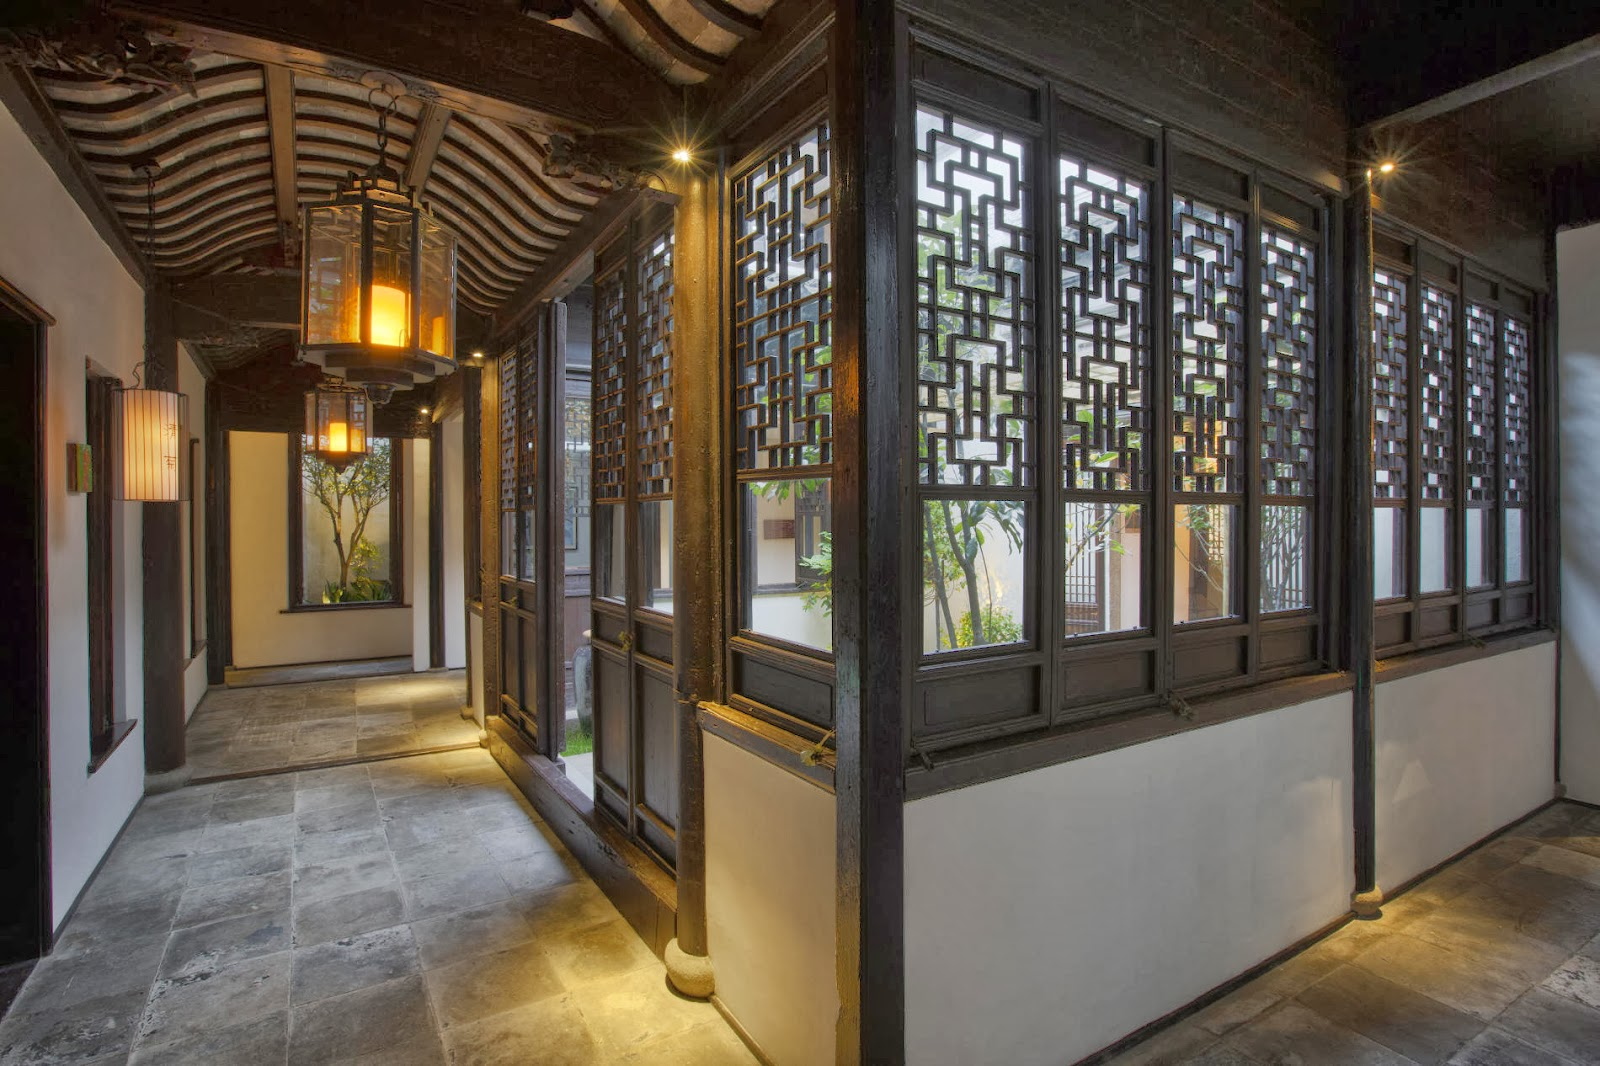 Asian Style Lighting interiornity |source of interior design ideas & inspirational